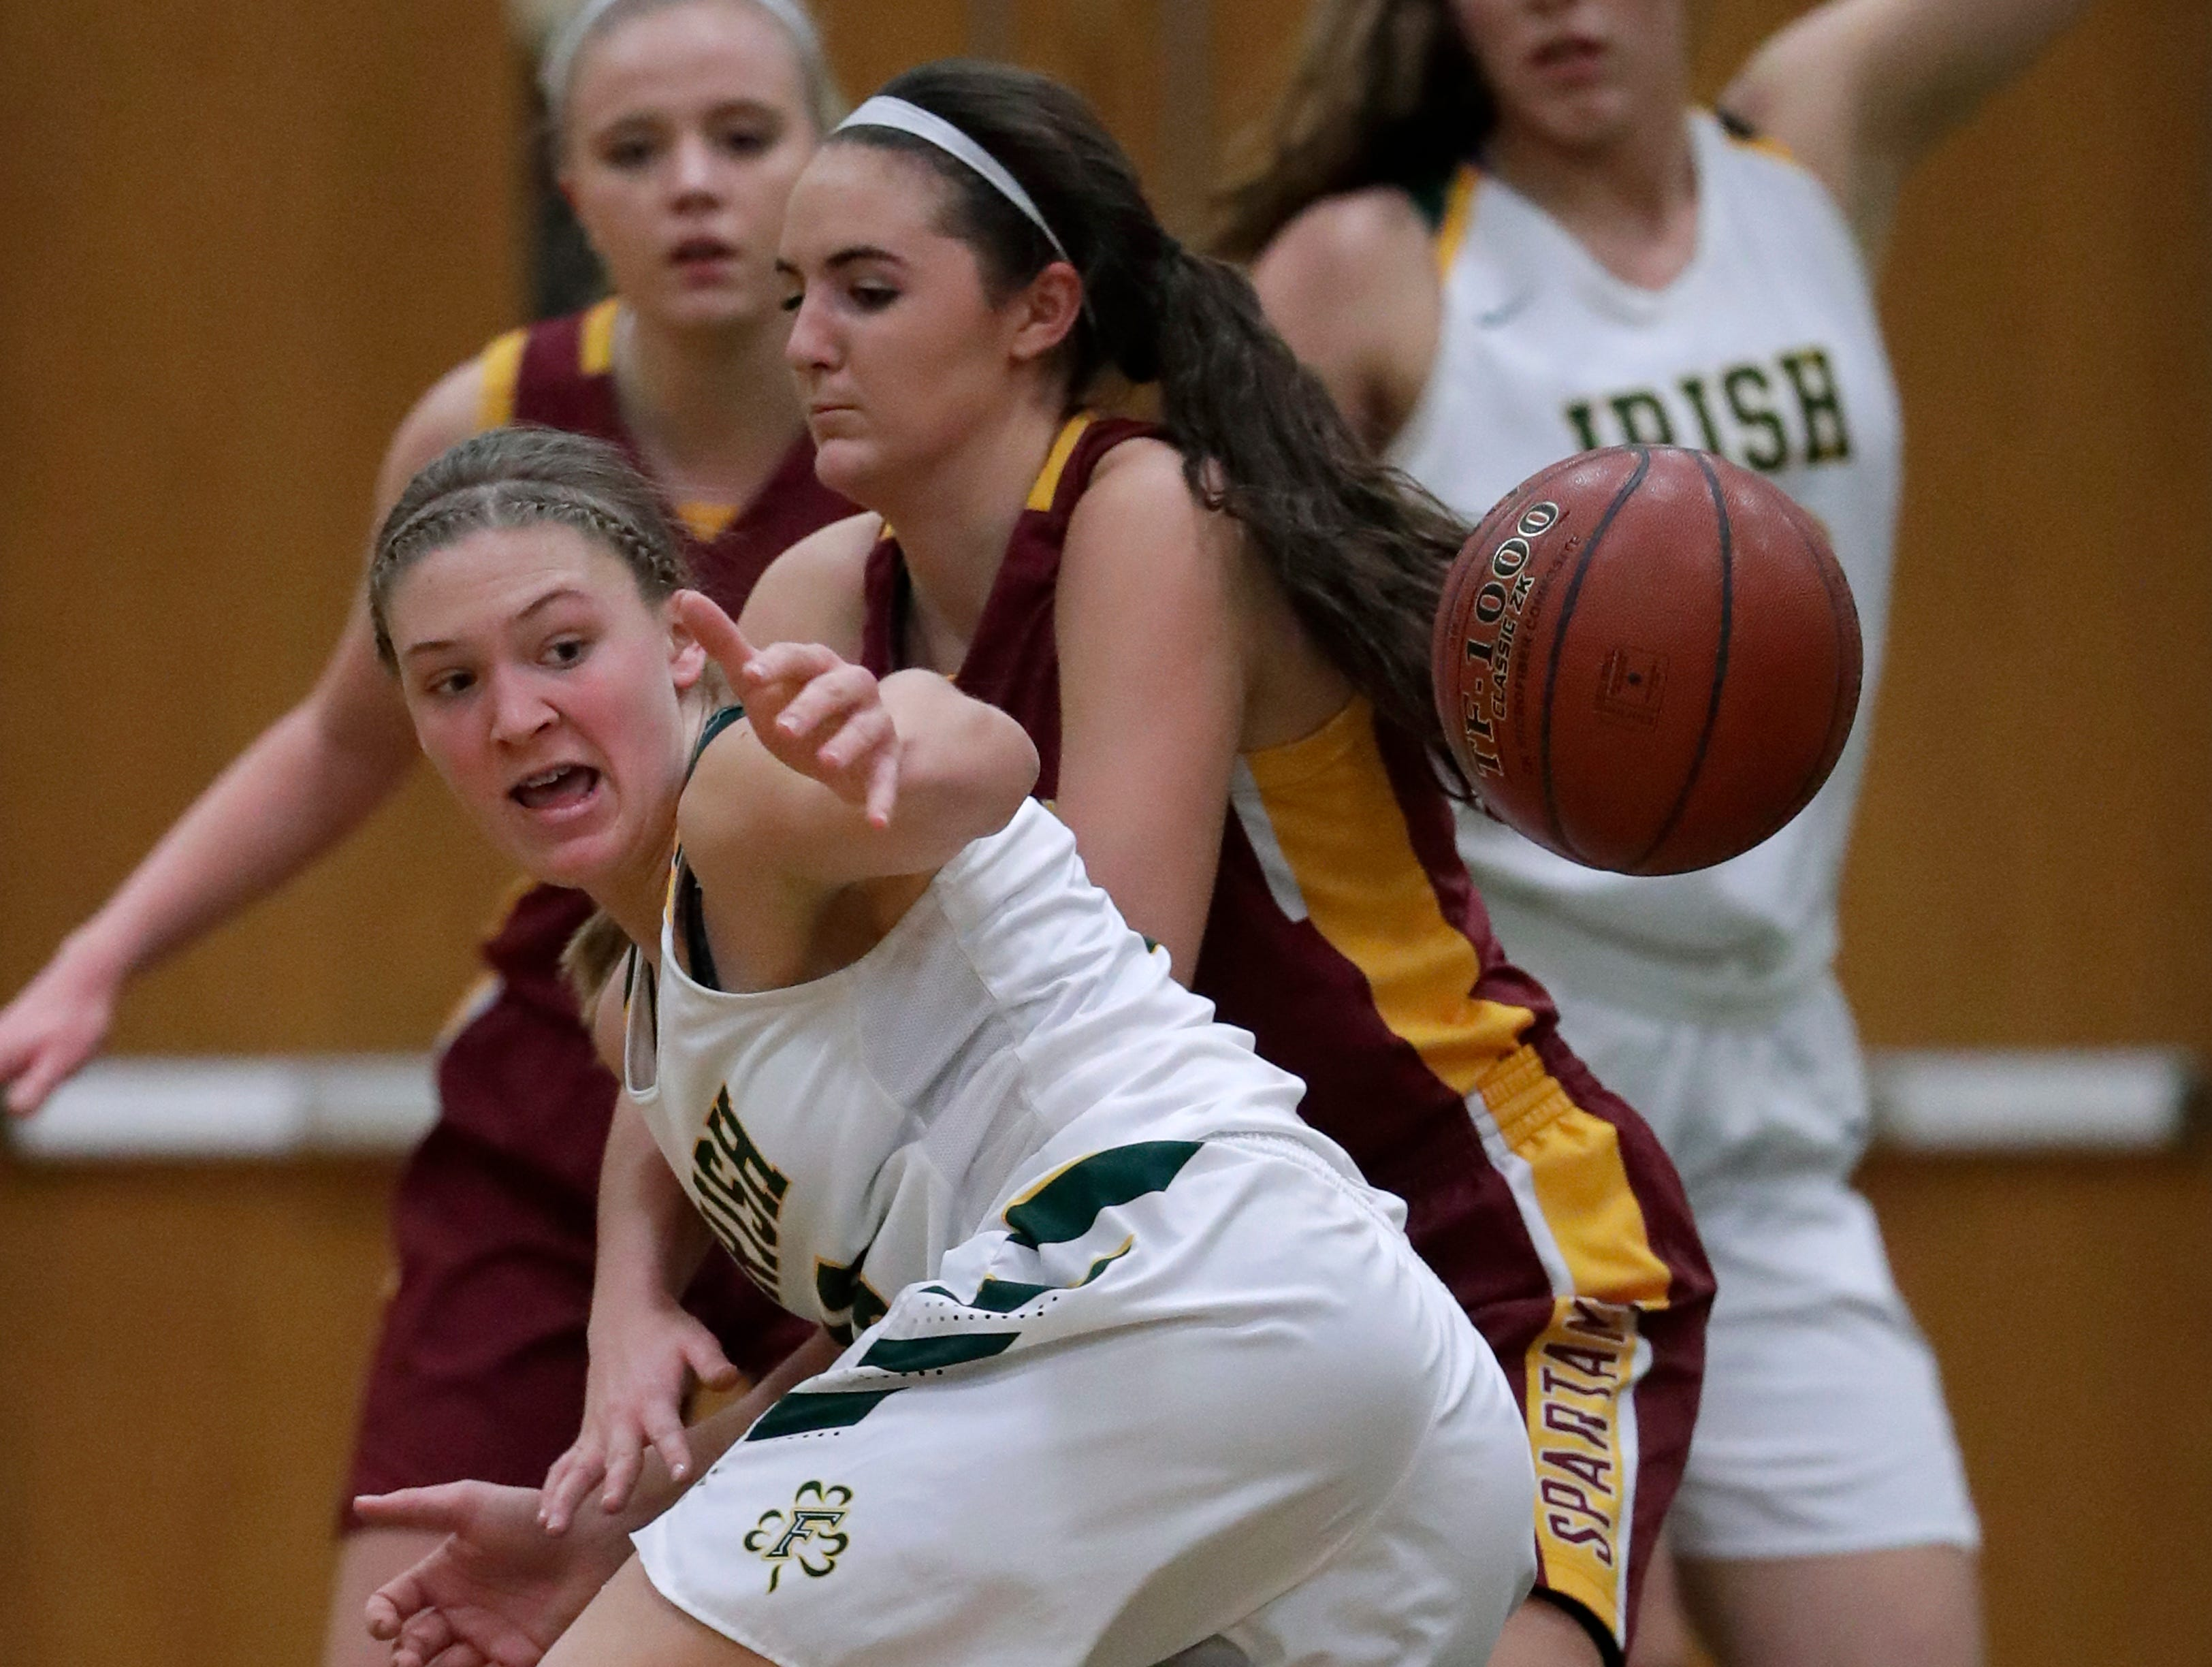 Freedom High School's Gabby Johnson, left, has the ball knocked away by Luxemburg-Casco High School's Cassie Schiltz during their girls basketball game Thursday, January 24, 2019, in Freedom, Wis. 